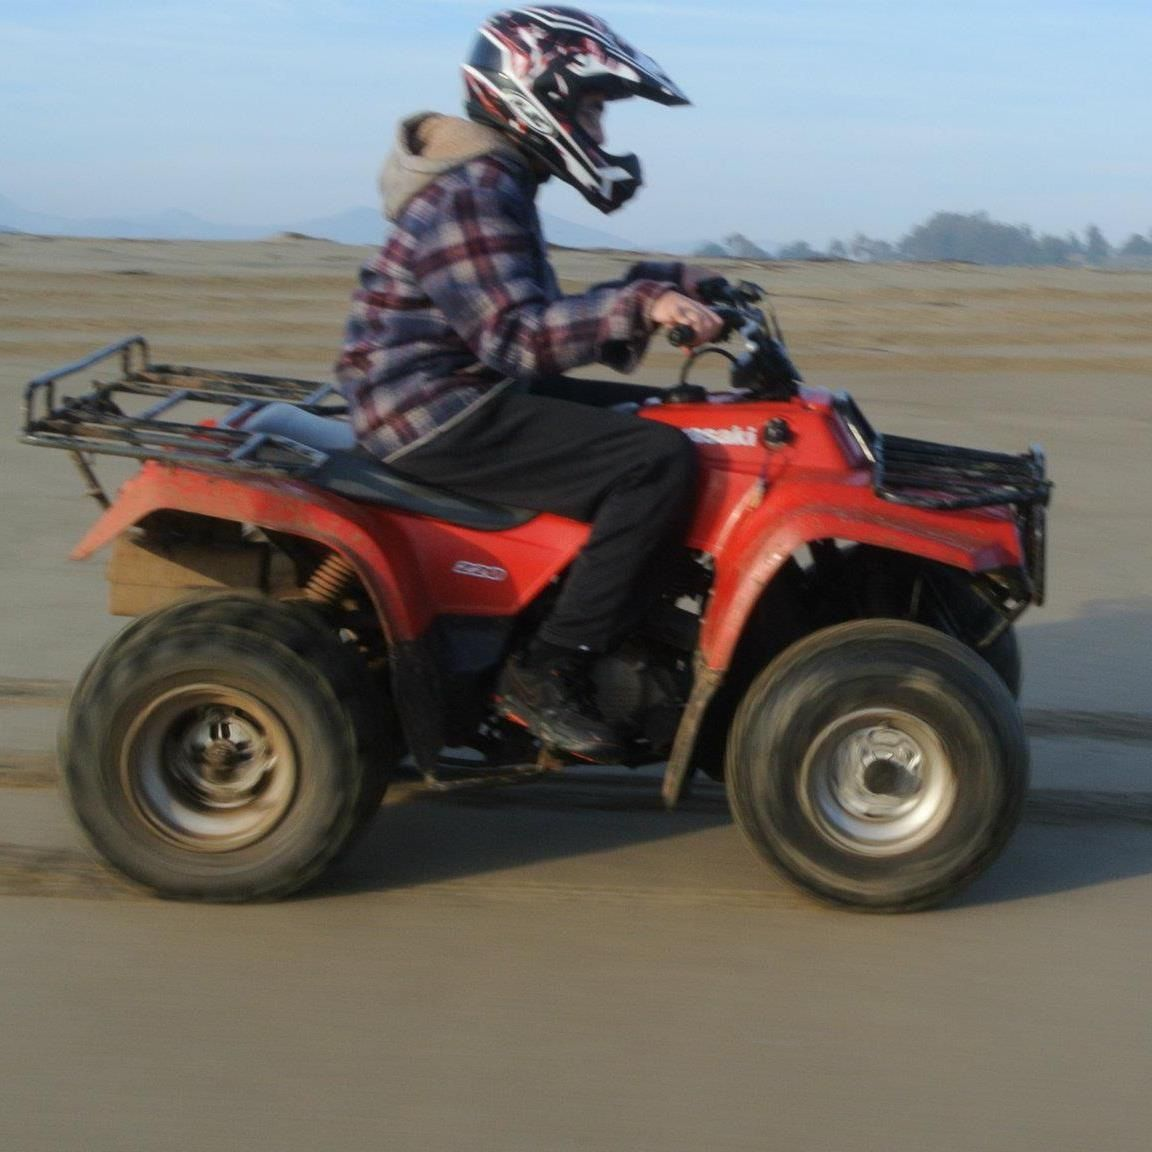 hight resolution of kawasaki bayou 220 our quad just ours is blue